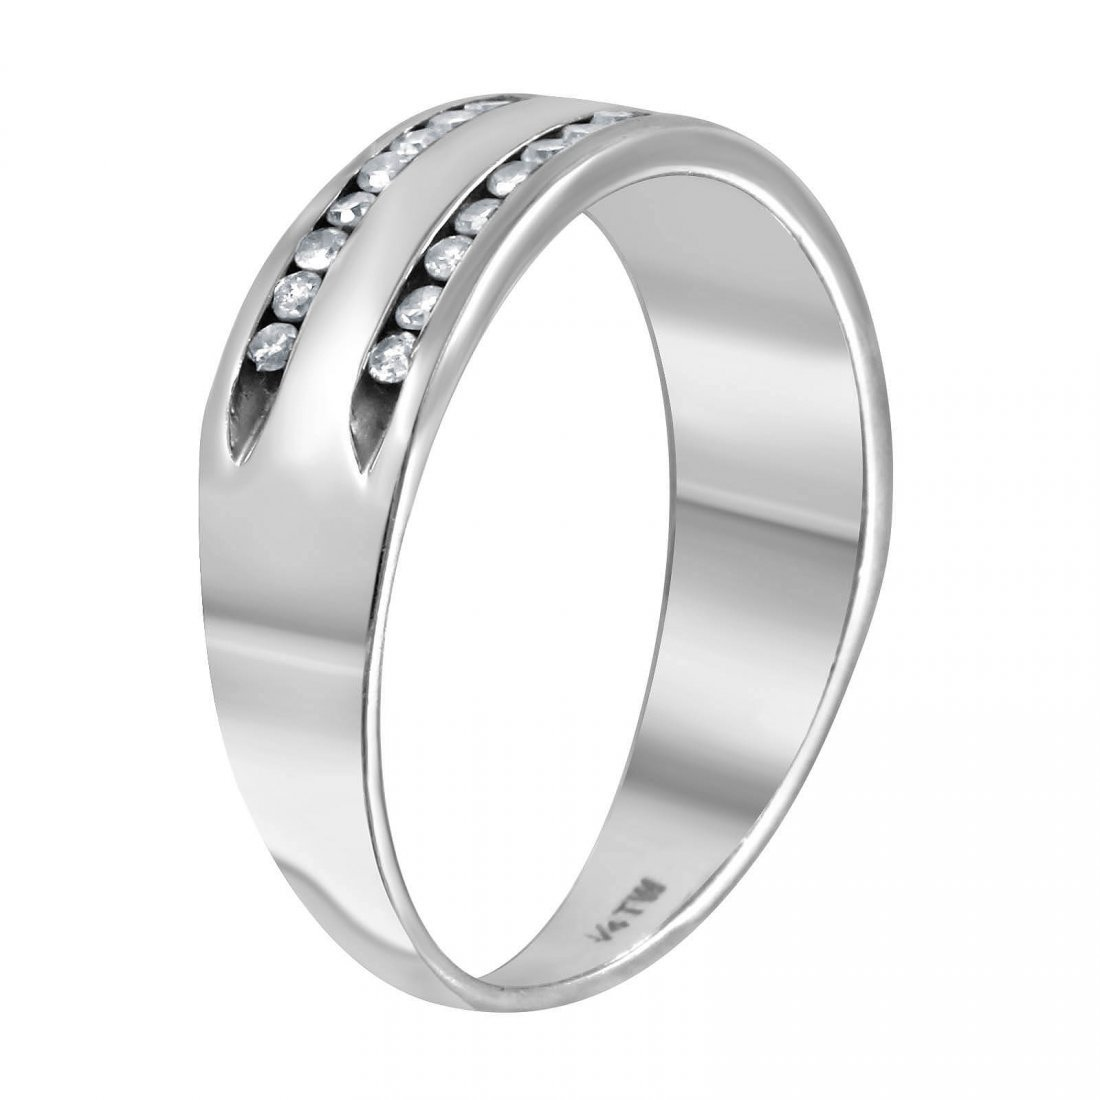 14K White Gold Diamond Wedding Band, Size 5 - 2